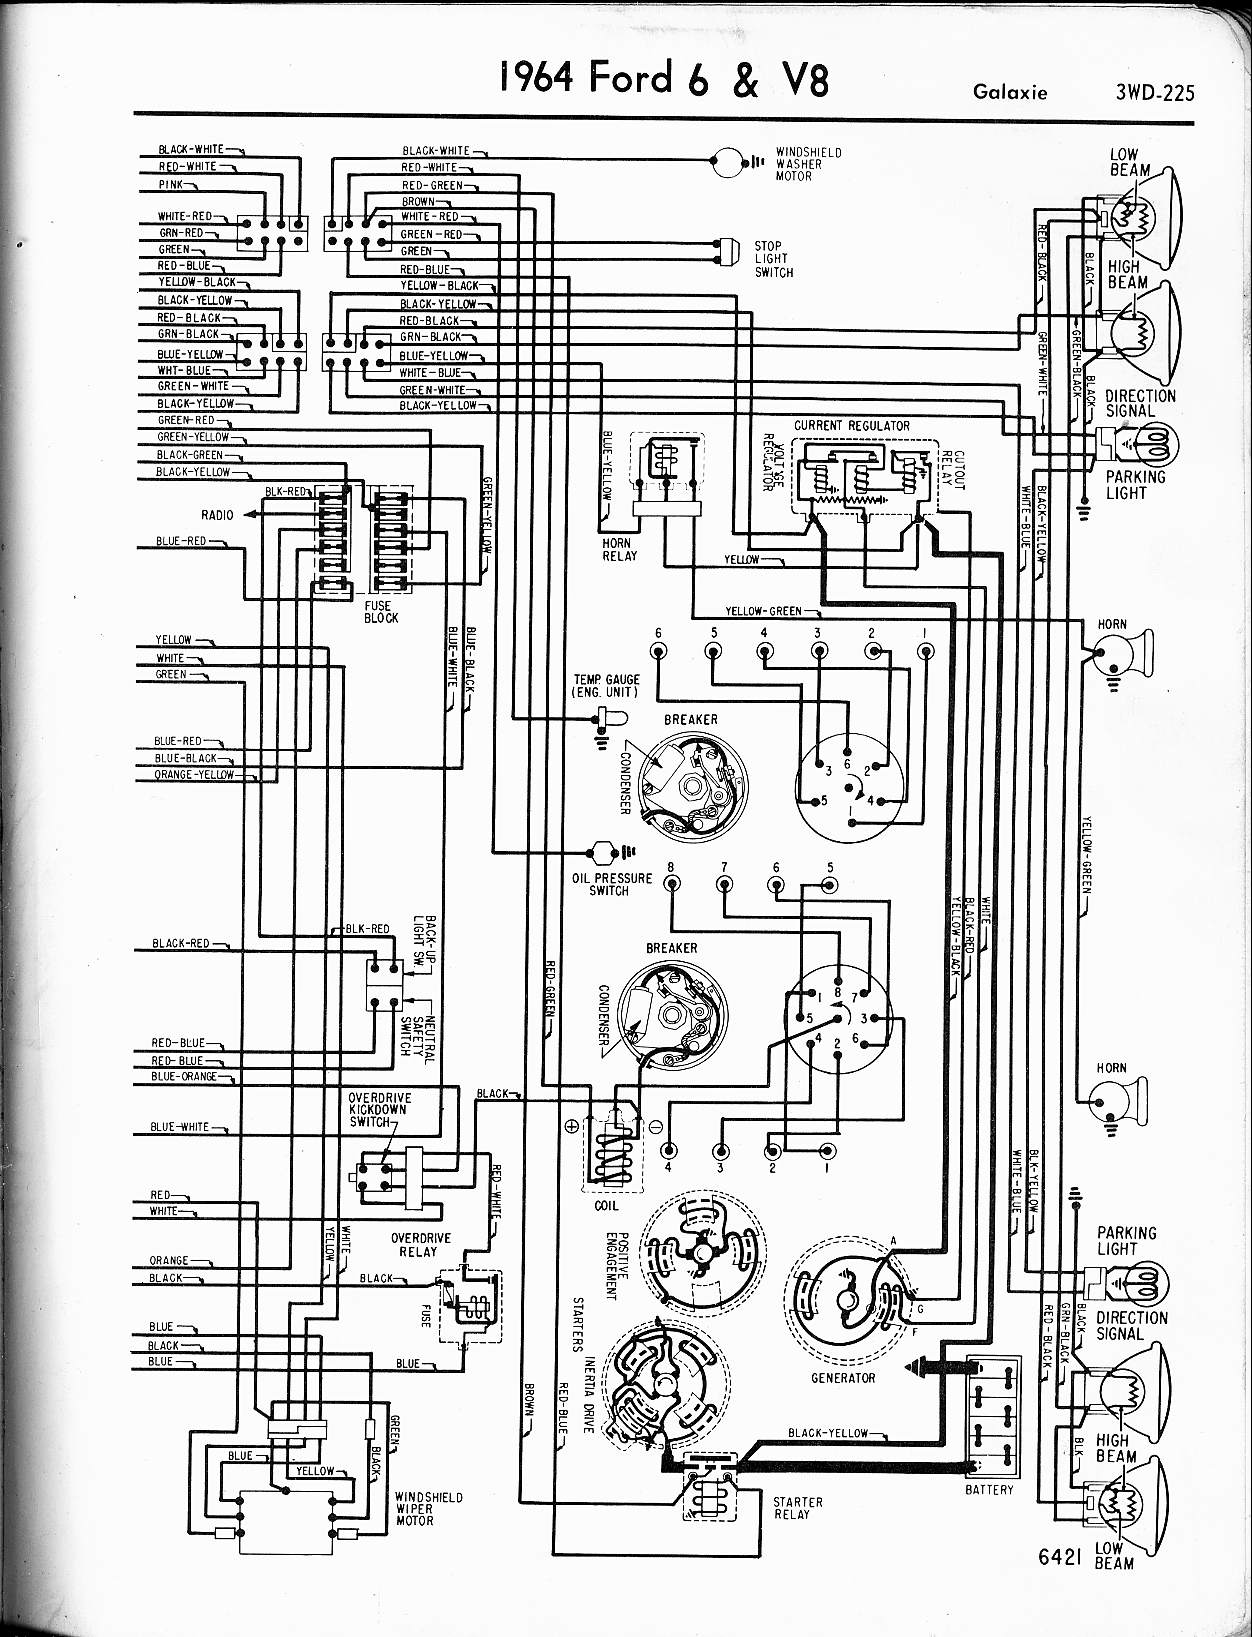 57 65 ford wiring diagrams rh oldcarmanualproject com 1974 Ford Pinto Wiring-Diagram 59 Ford Fairlane Wiring-Diagram